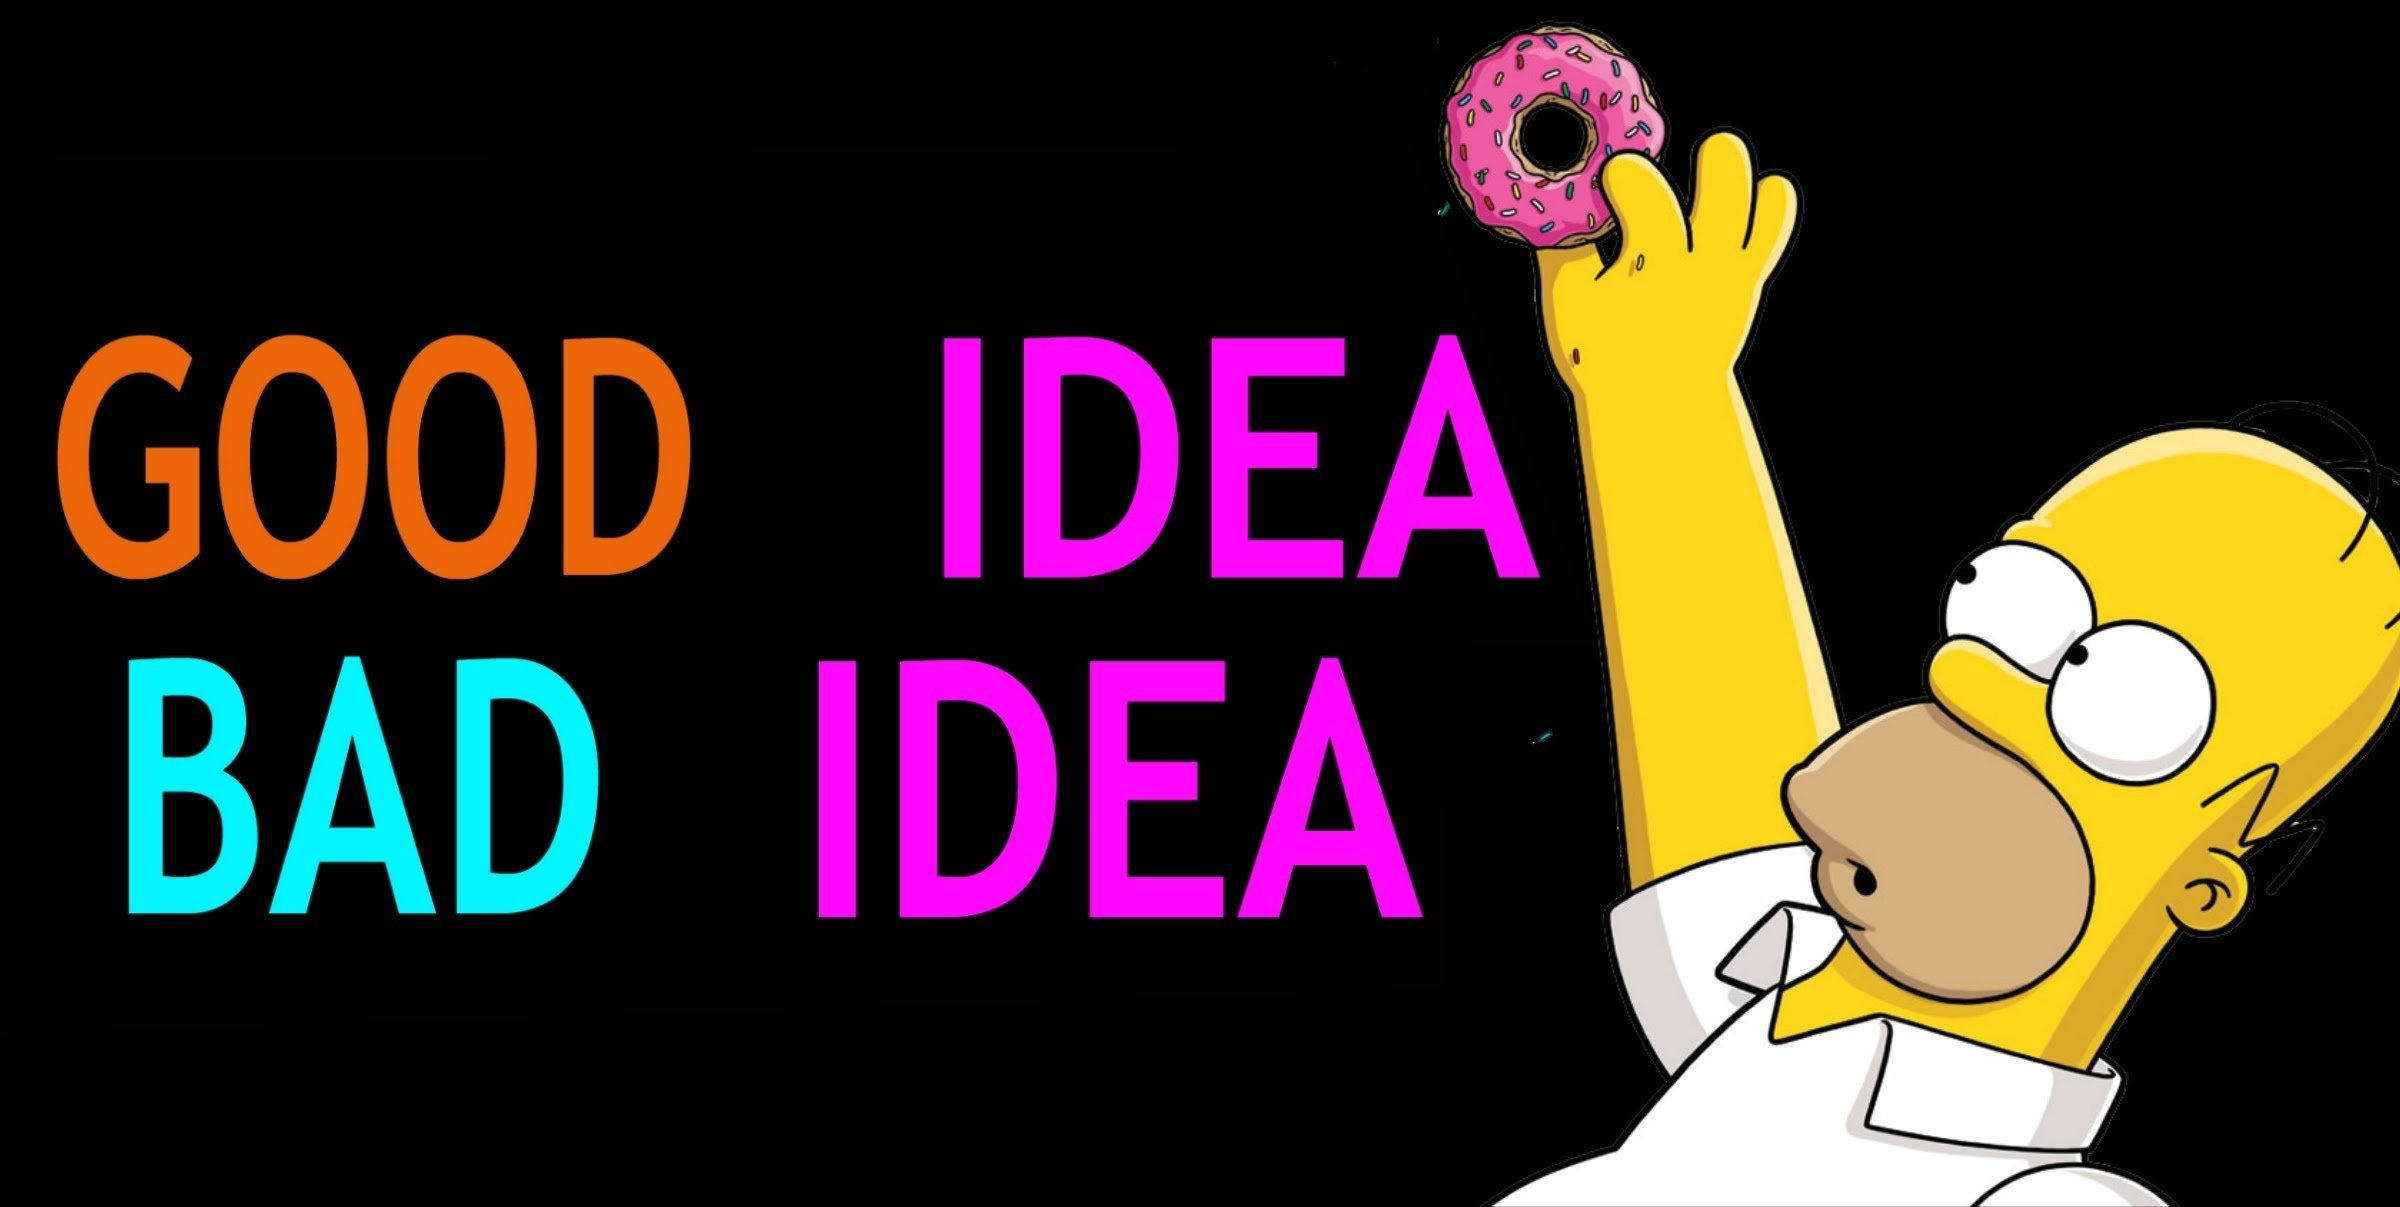 10 Elegant Good Idea Bad Idea Animaniacs good idea bad idea the simpsons out of ideas youtube 1